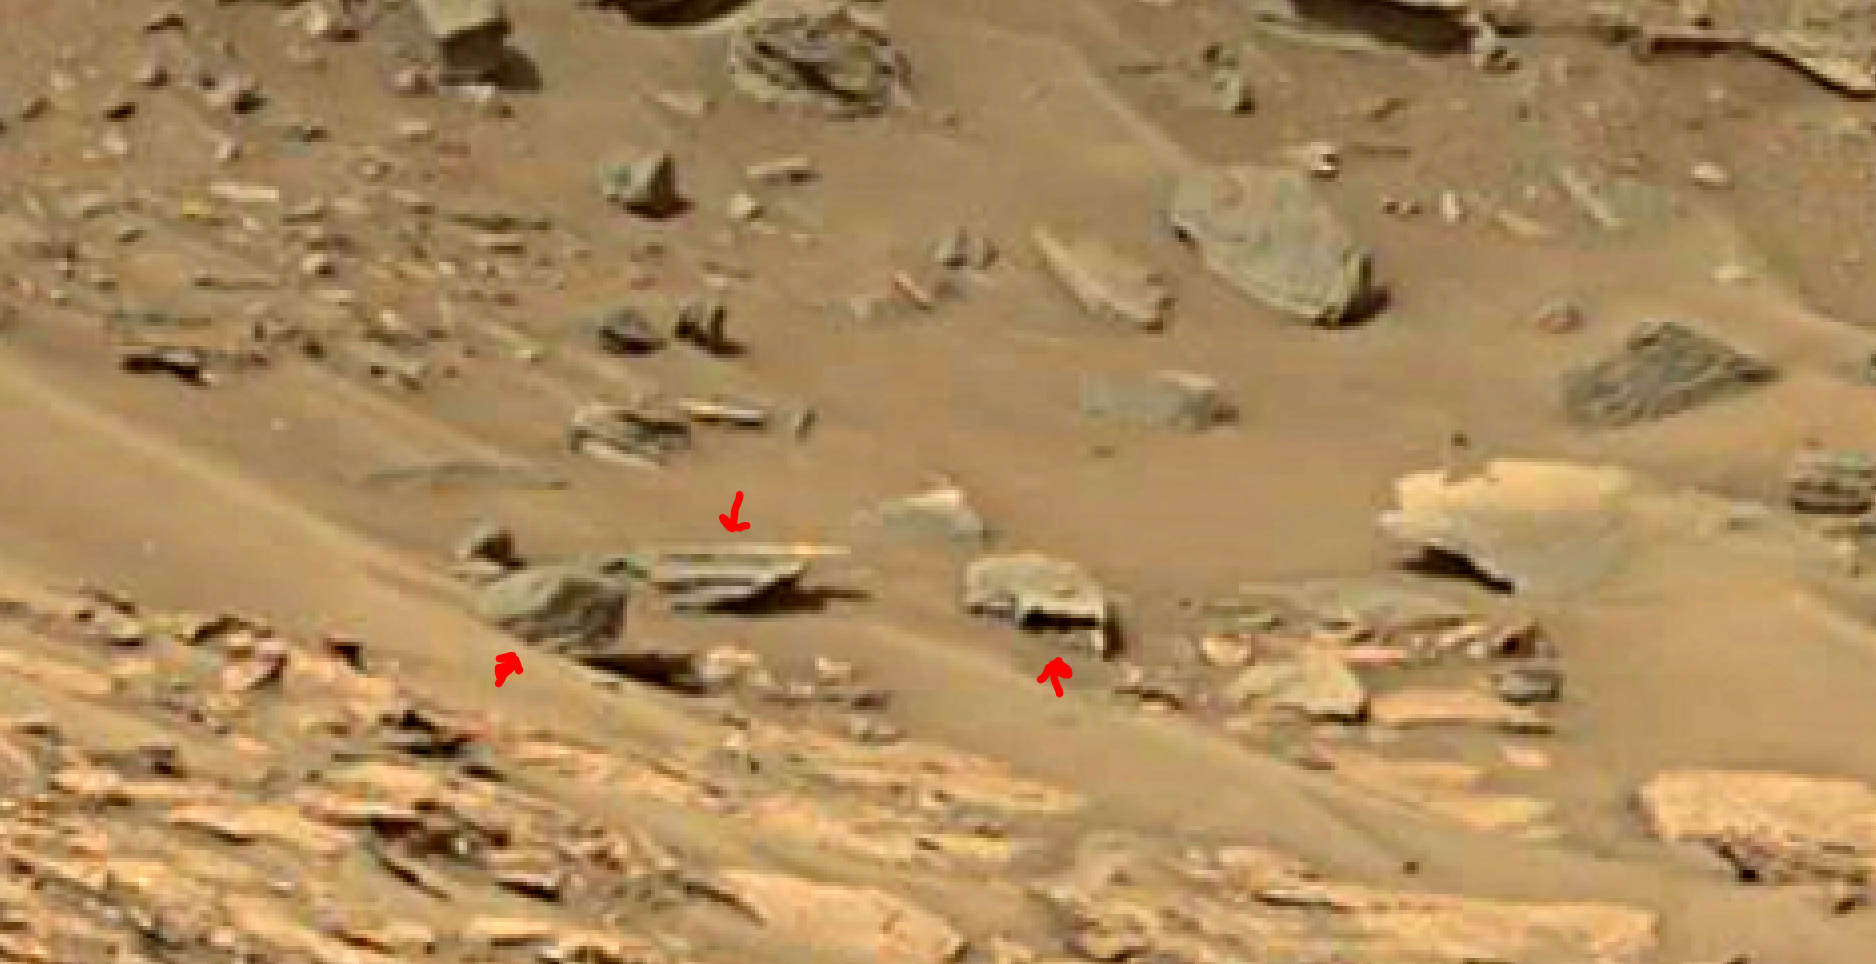 mars-sol-1451-anomaly-artifacts-3a-was-life-on-mars